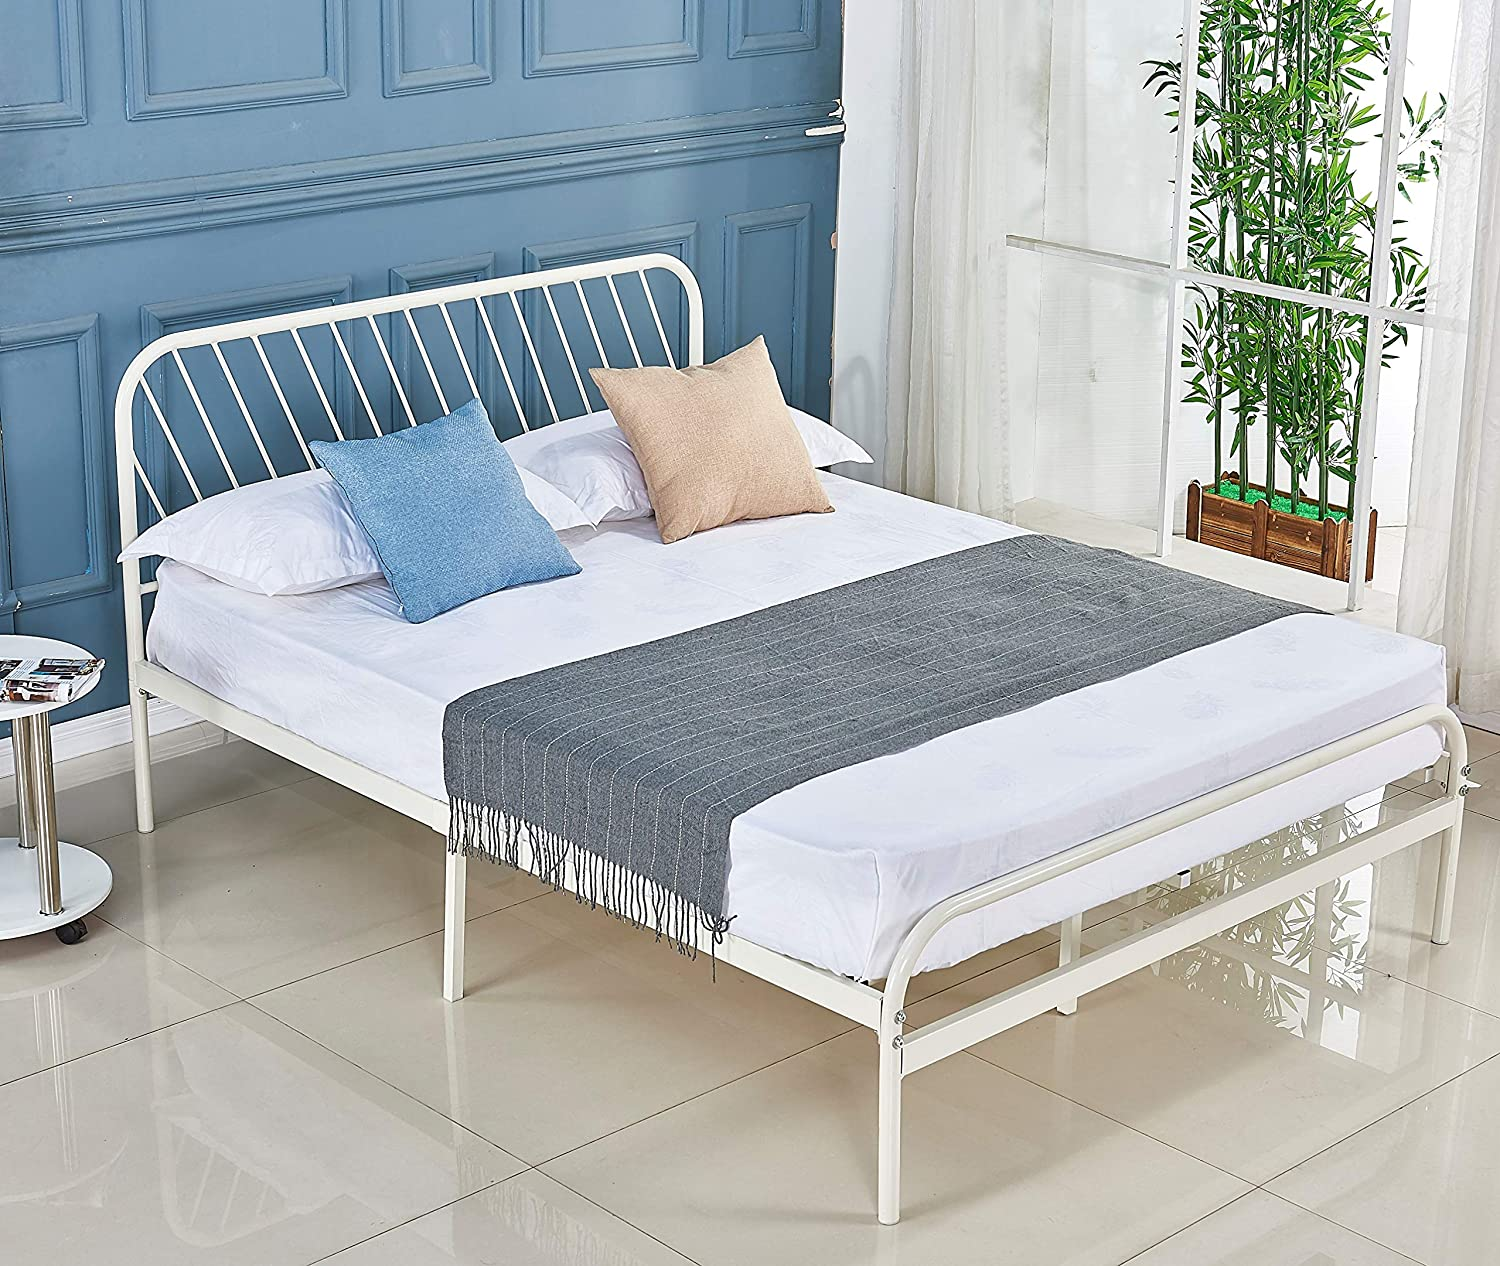 Alooter Full Bed Frame, White Platform Metal Bed Frame Foundation Full Size with Headboard and Footboard DS-11 Full